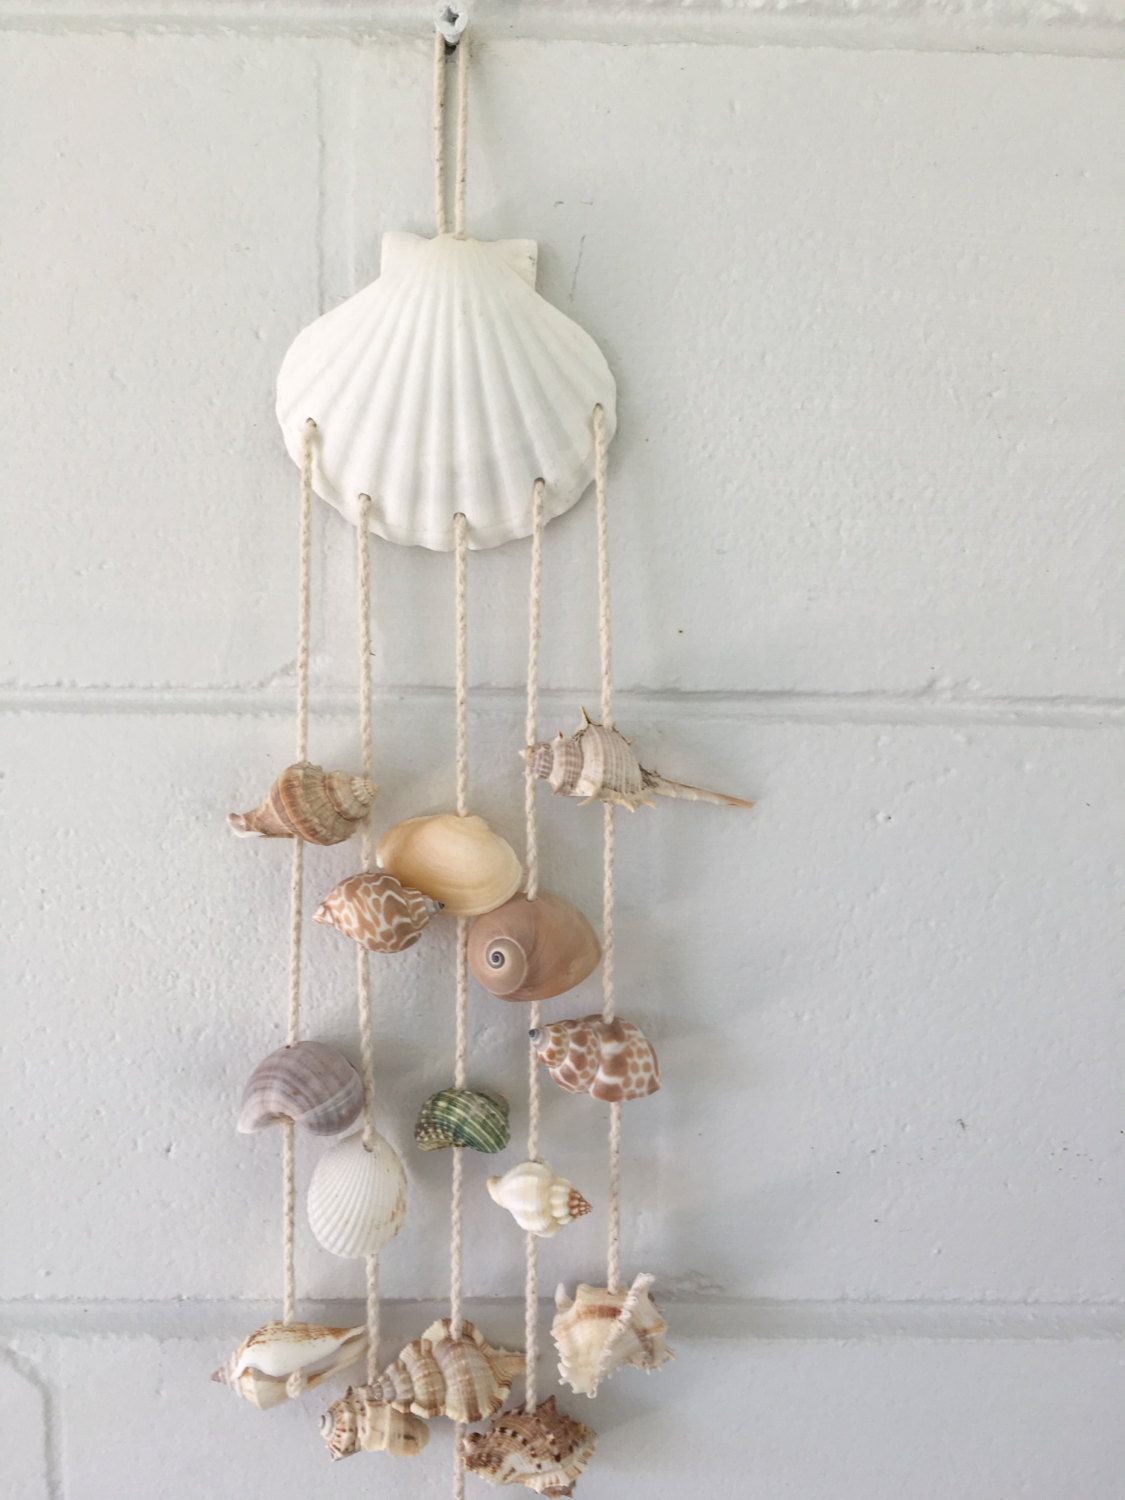 Summer Sale Sea Shell Hanging Wind Chime Sea Shells Wall Hanging Beach Decor Coastal 15 99 Usd Seashell Crafts Shell Crafts Diy Sea Shells Diy